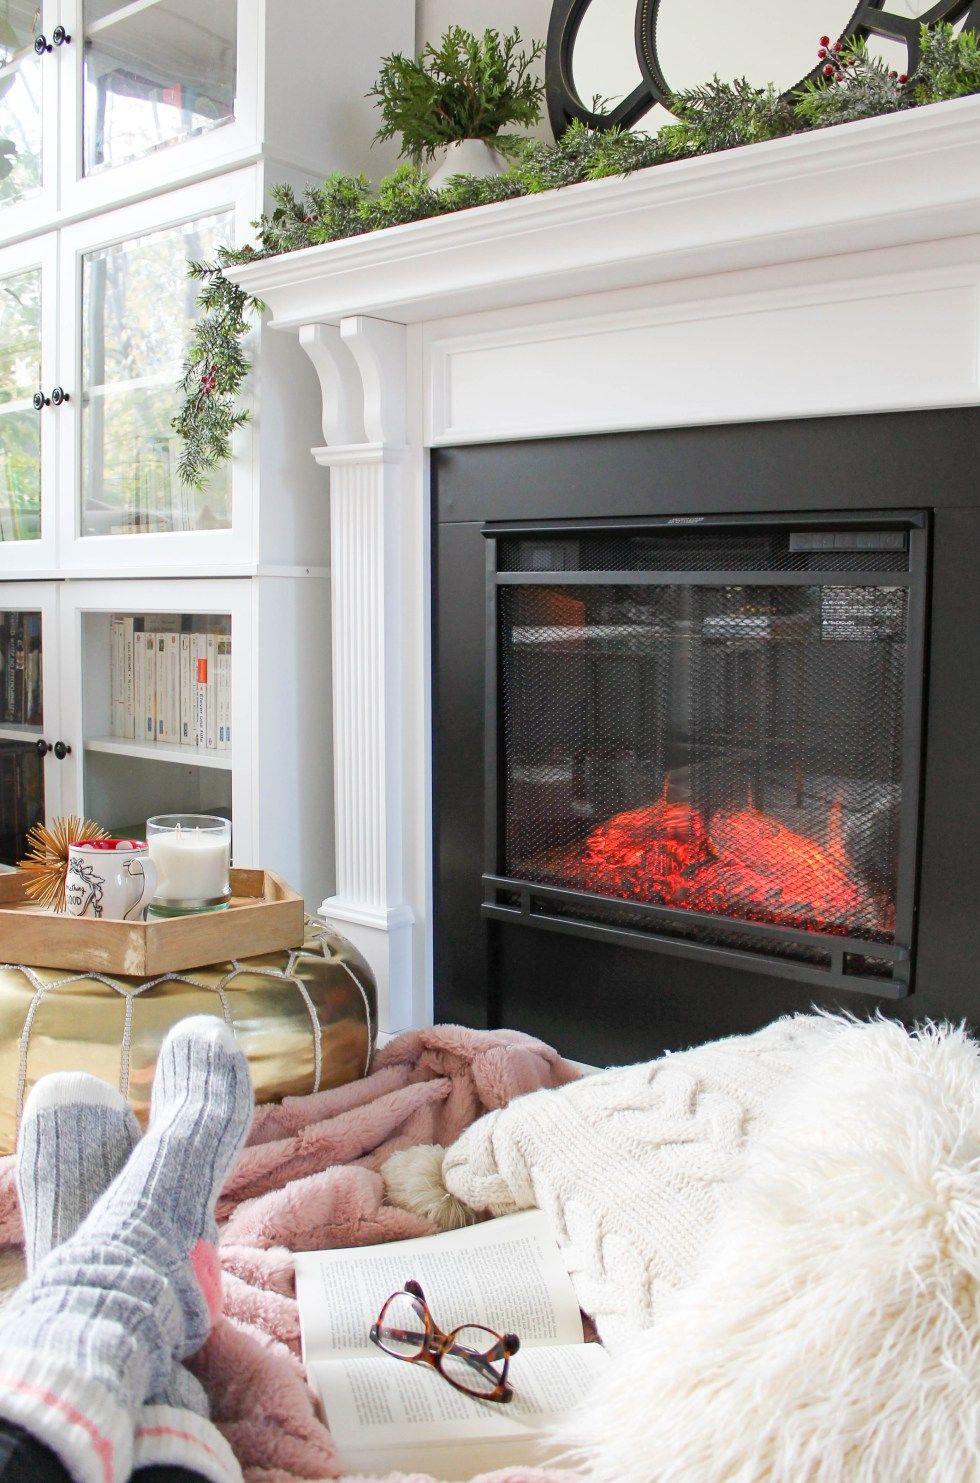 How To Make An Electric Fireplace Look Real